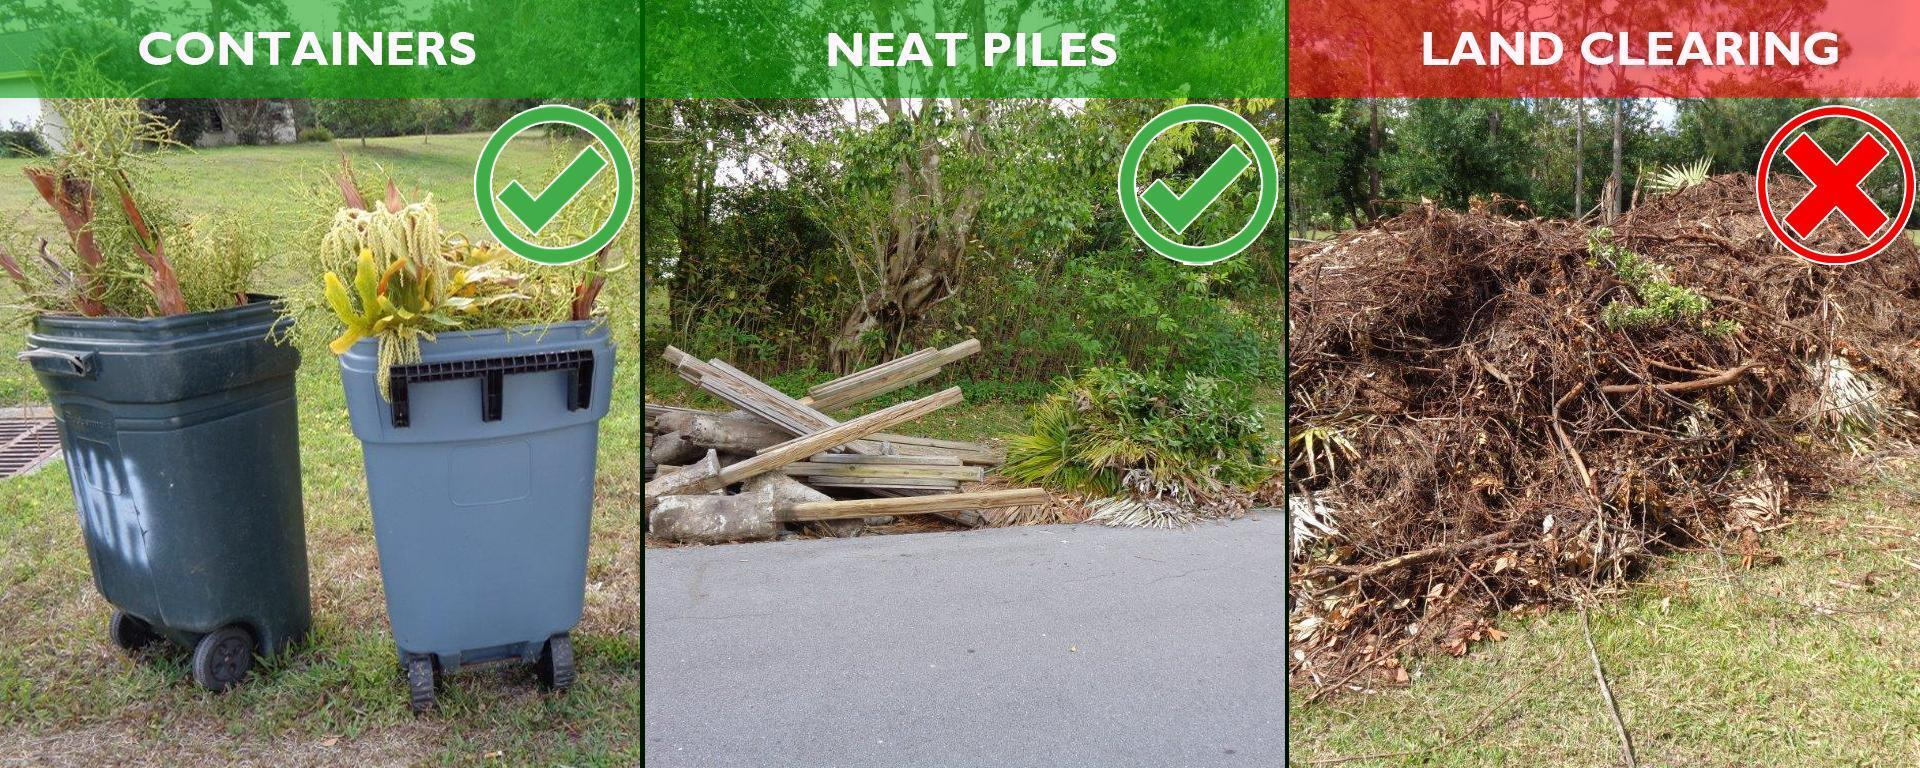 Approved yard waste disposal methods include containerized waste and neat piles. It does not include land clearing.